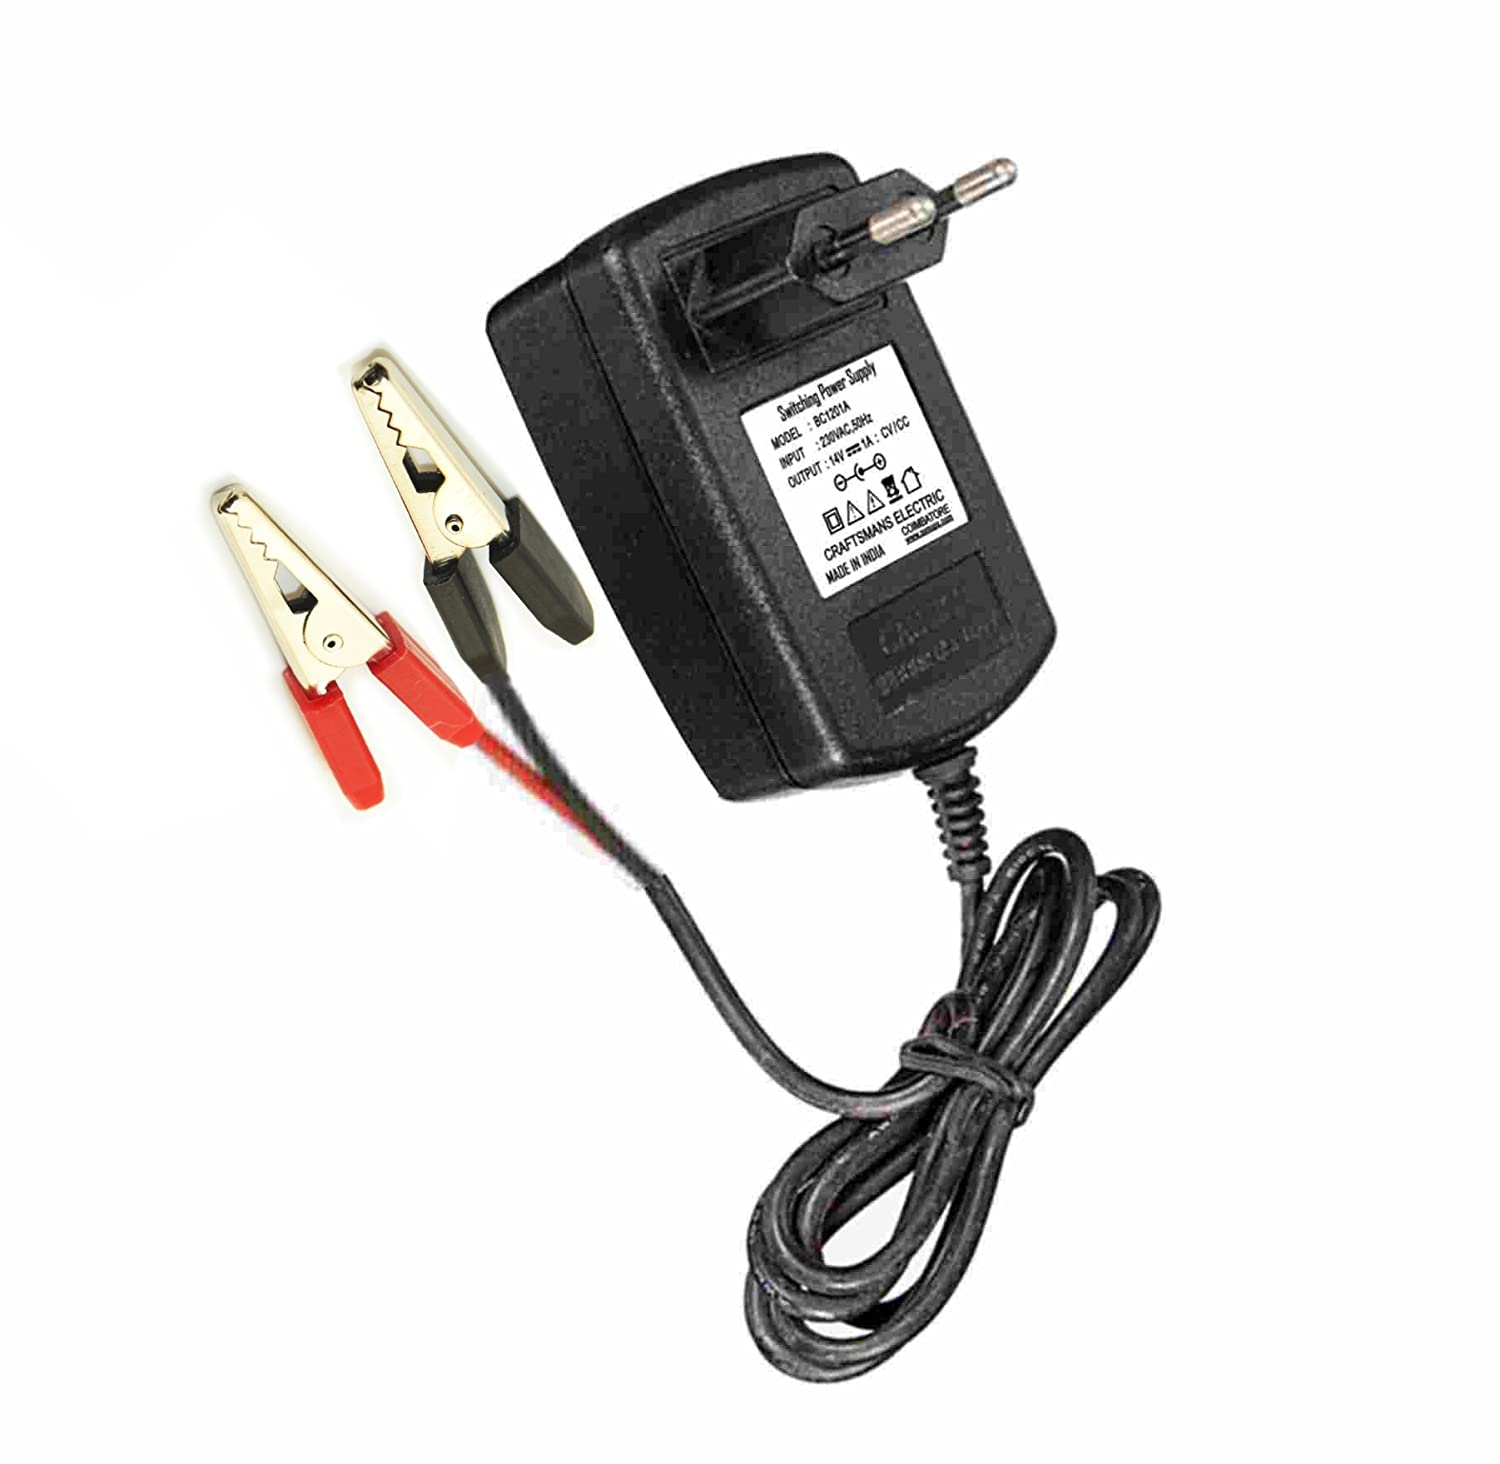 Powerindia Battery Charger 12v 1a Adapter Electronics Lightweight Circuit Diagram With Auto Cut Off